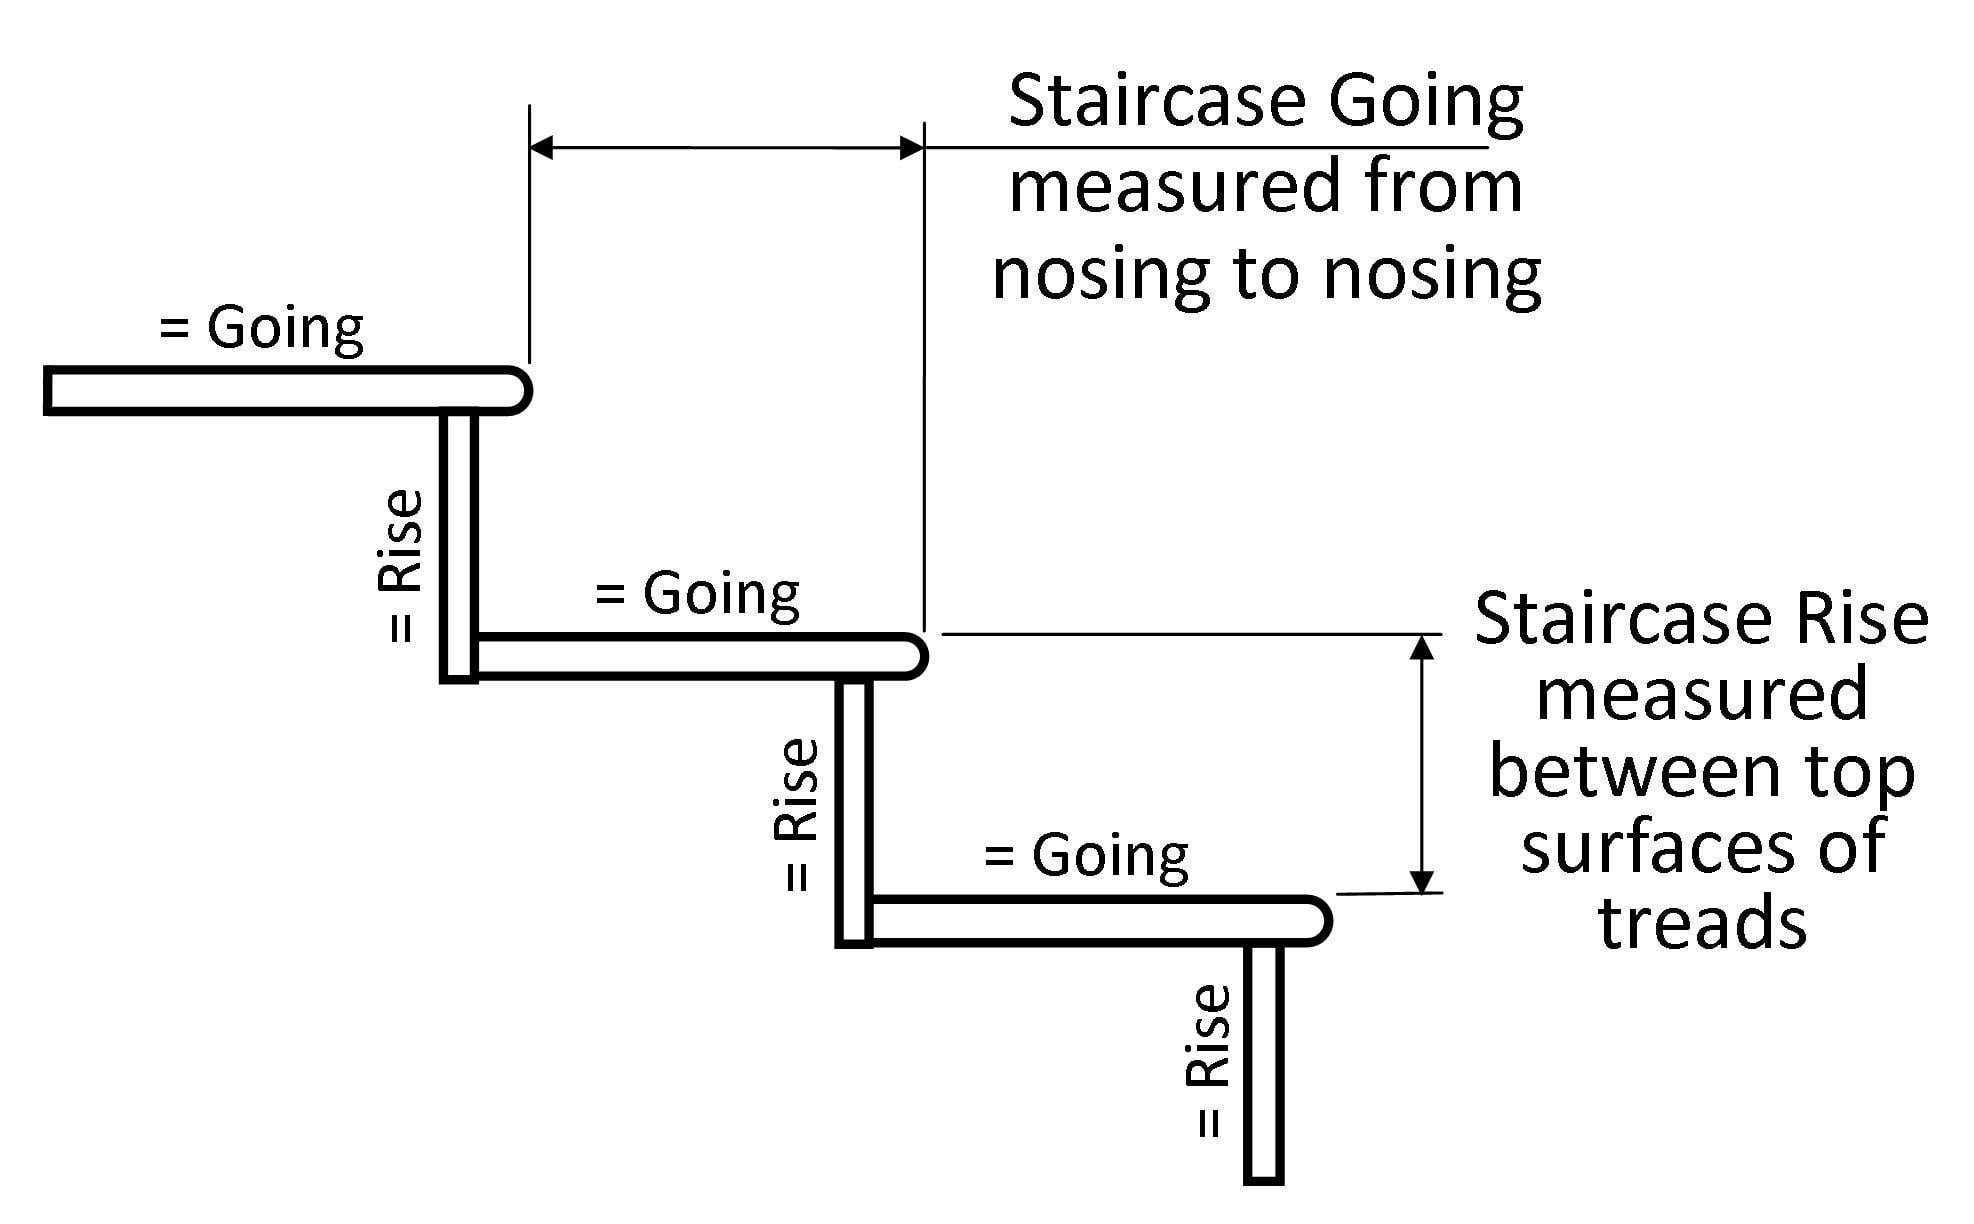 stairs going and rise explained